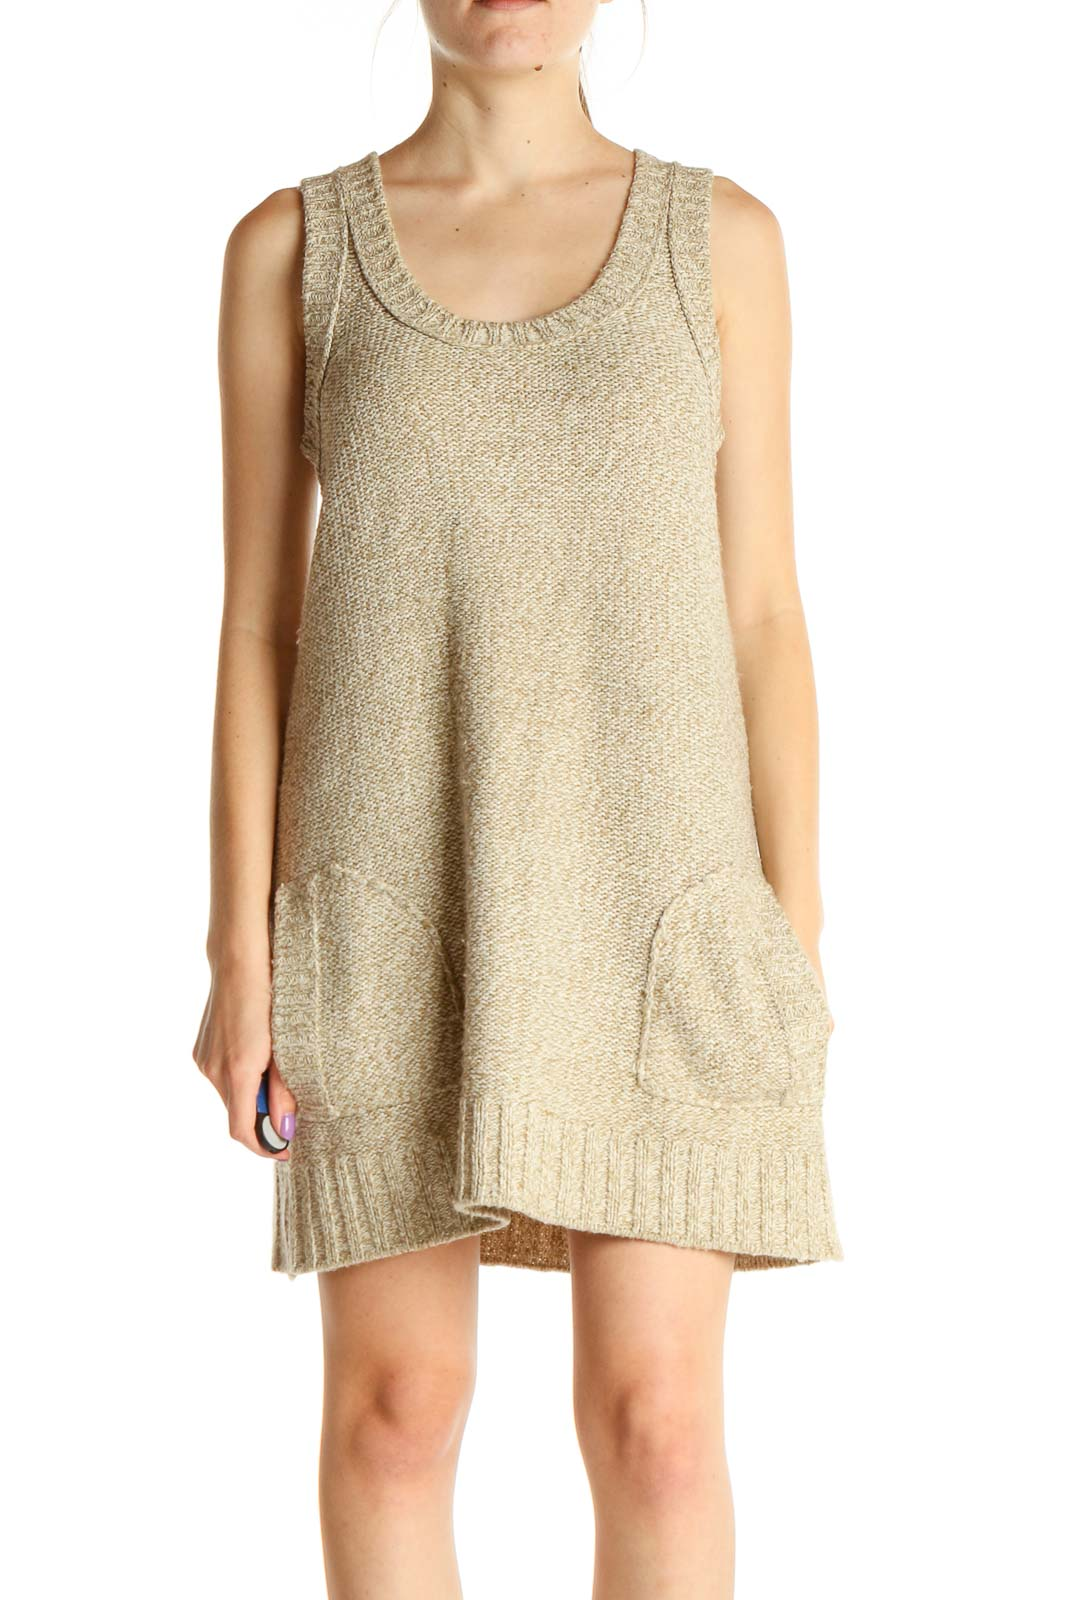 Beige Textured Bohemian Fit & Flare Dress Front